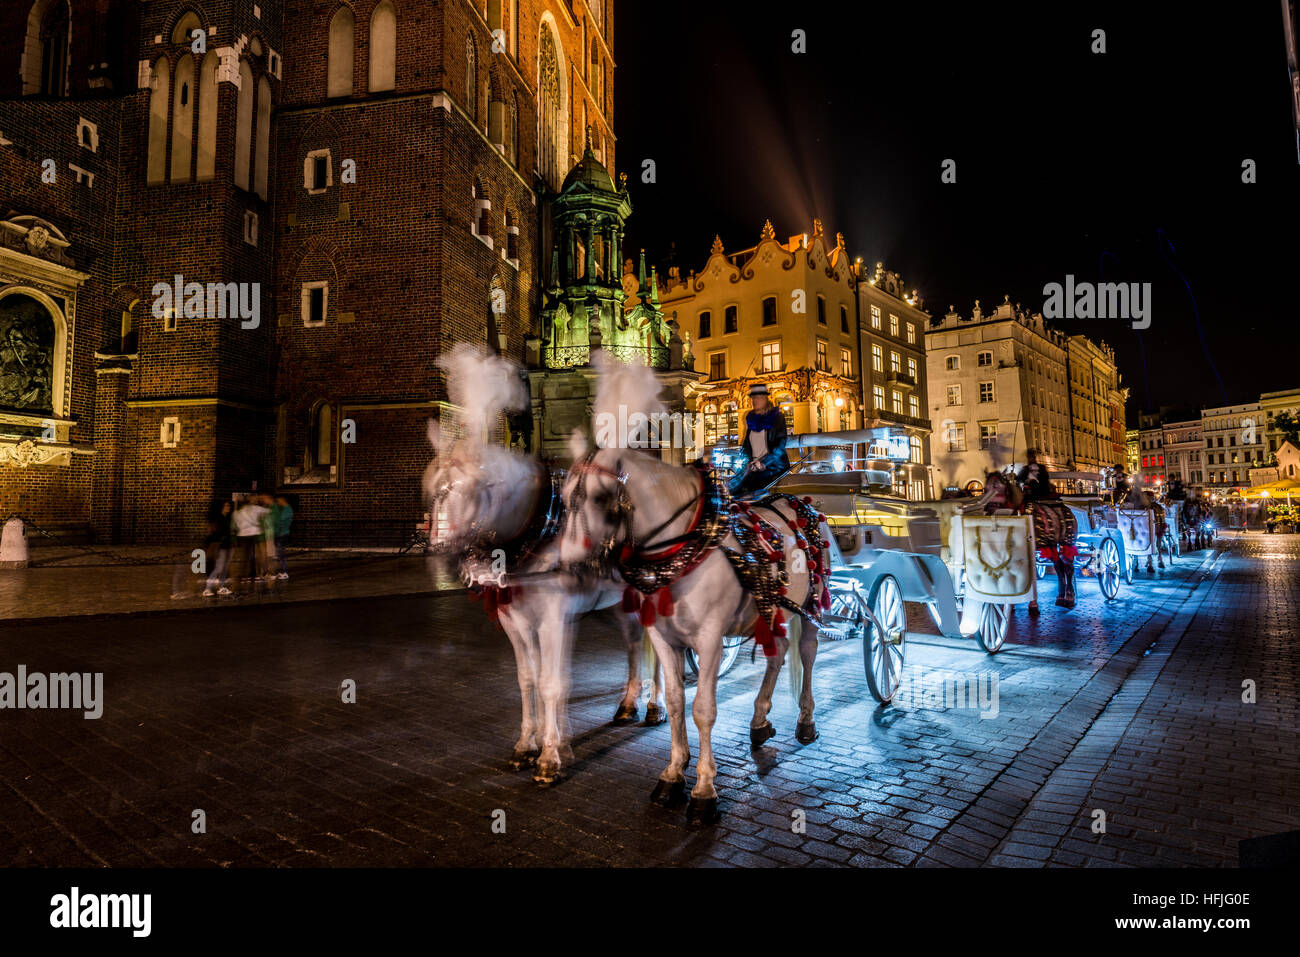 The 13th century main square of the Old Town of Kraków, is the principal urban space  is one of the larges - Stock Image